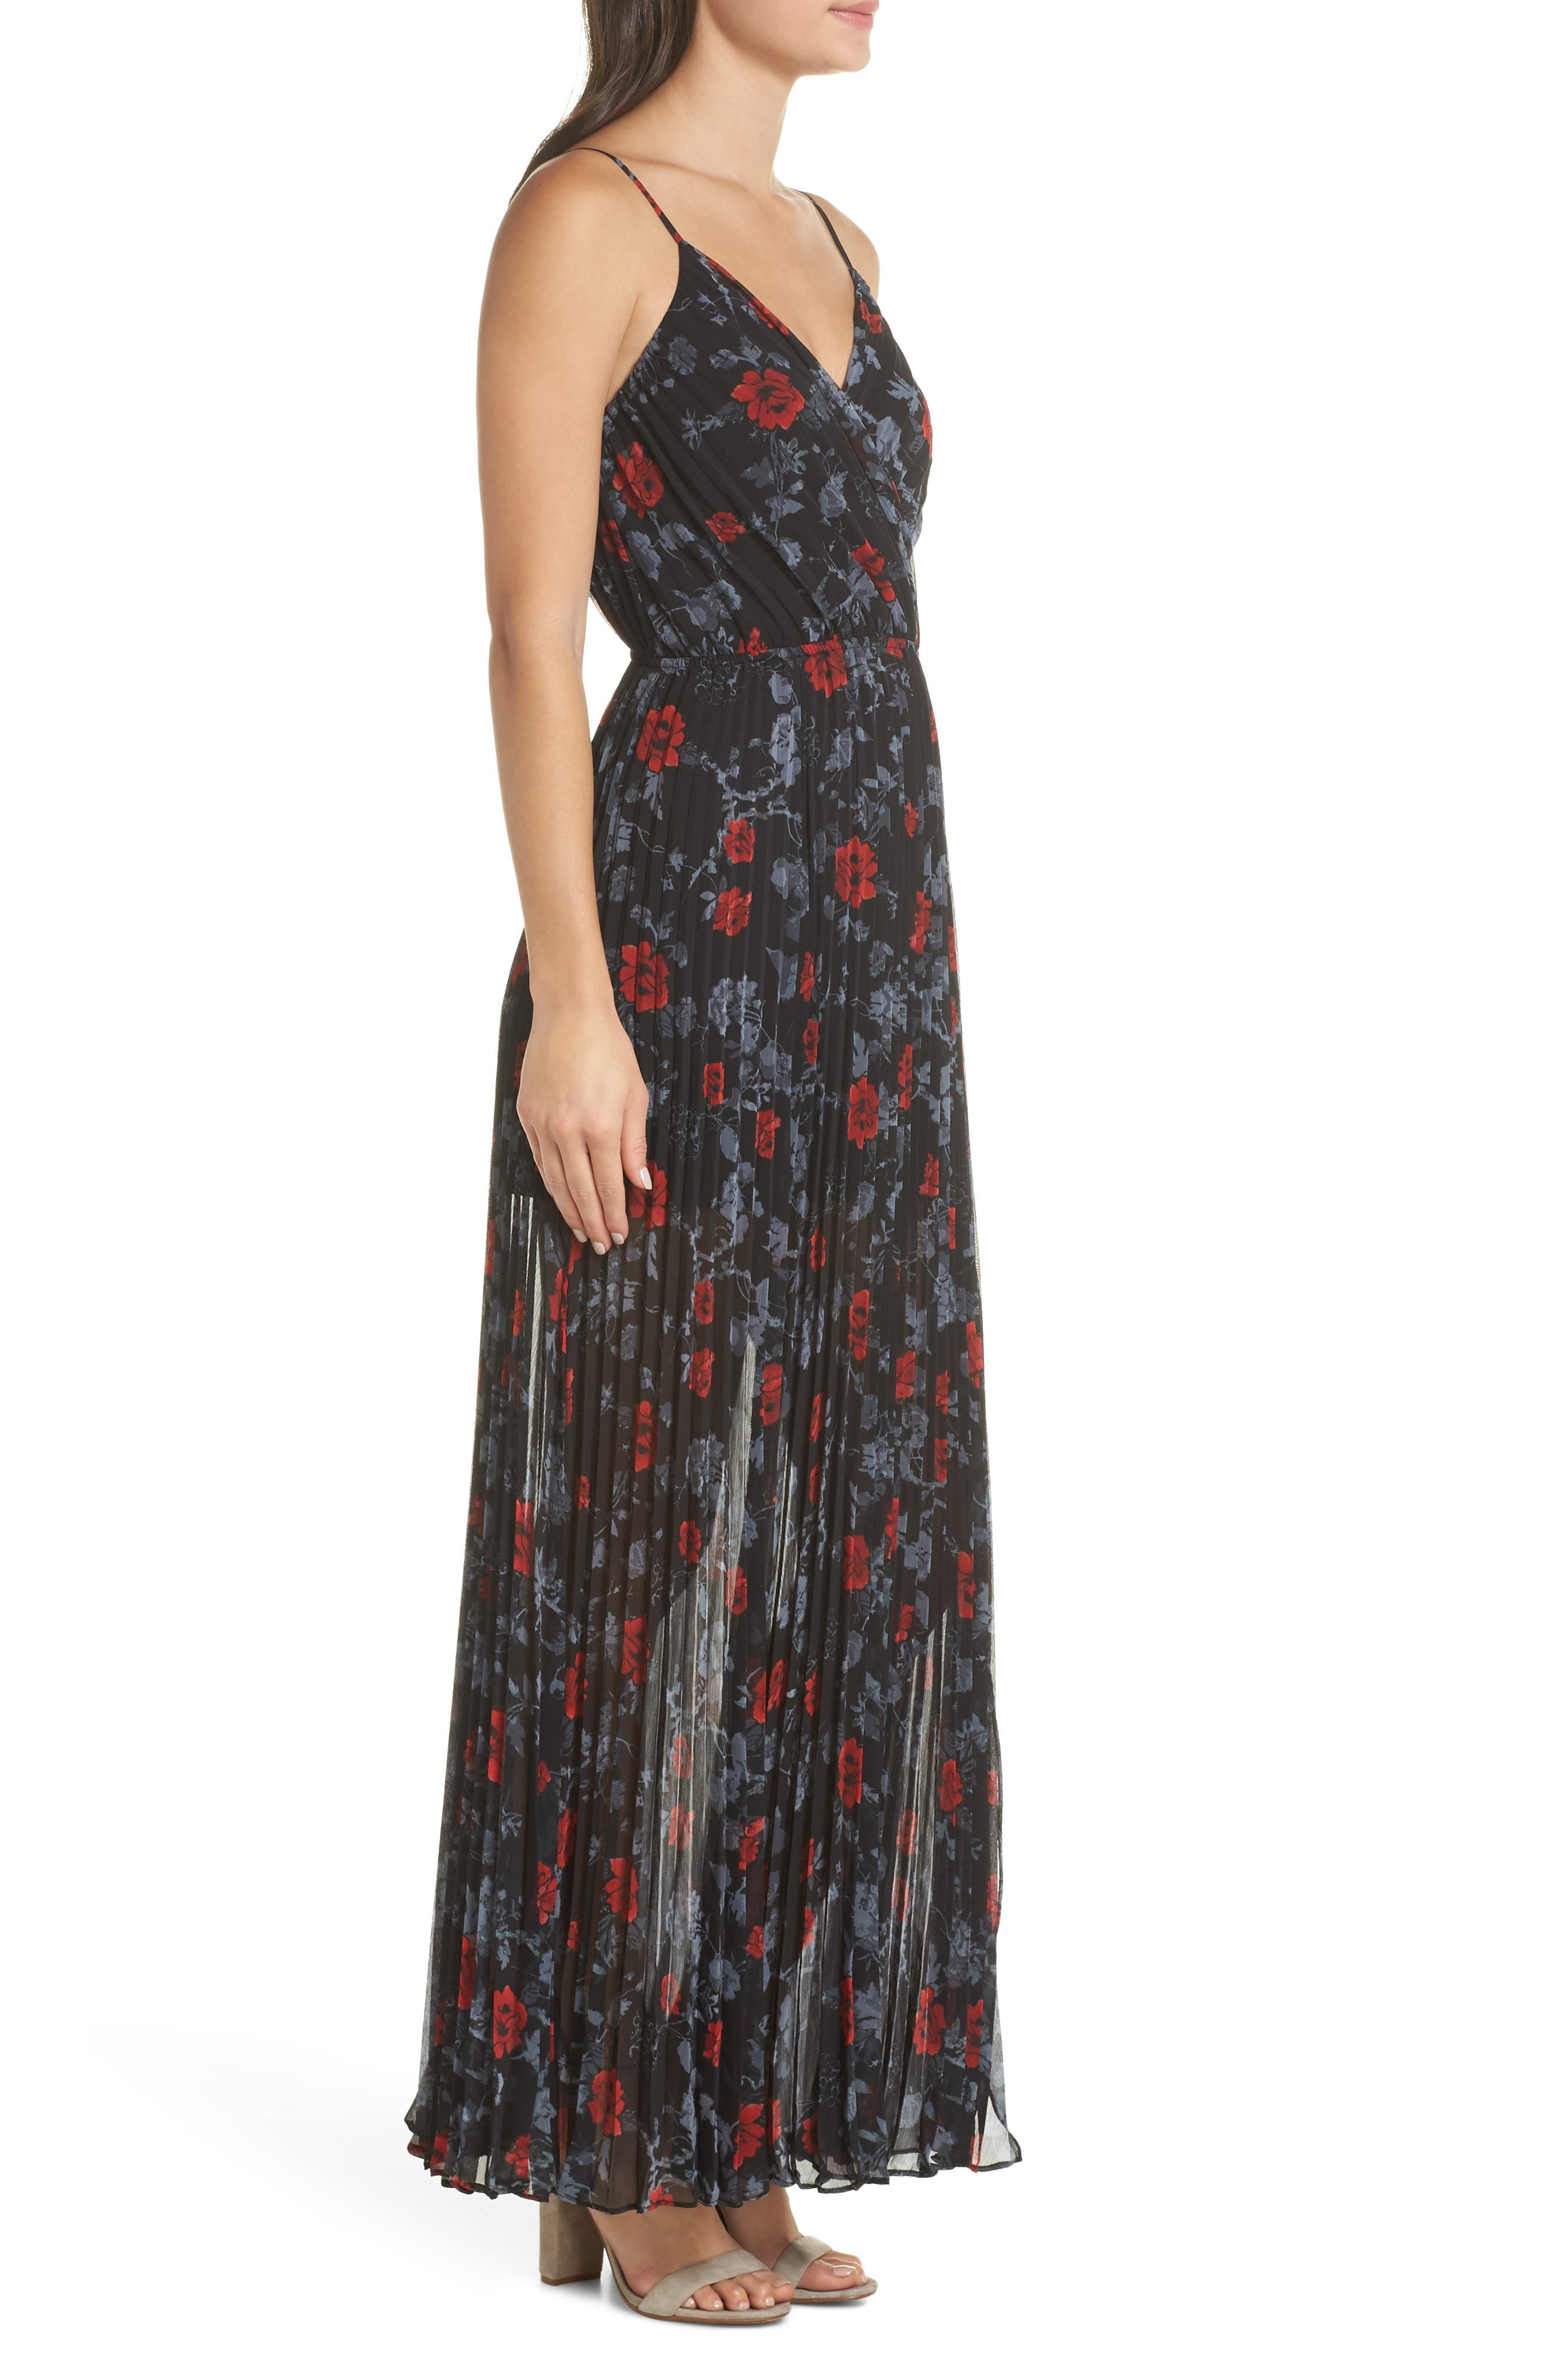 ALI & JAY, Roses Are Red Floral Pleated Maxi Dress, Alternate thumbnail 4, color, SCARLET ROSES